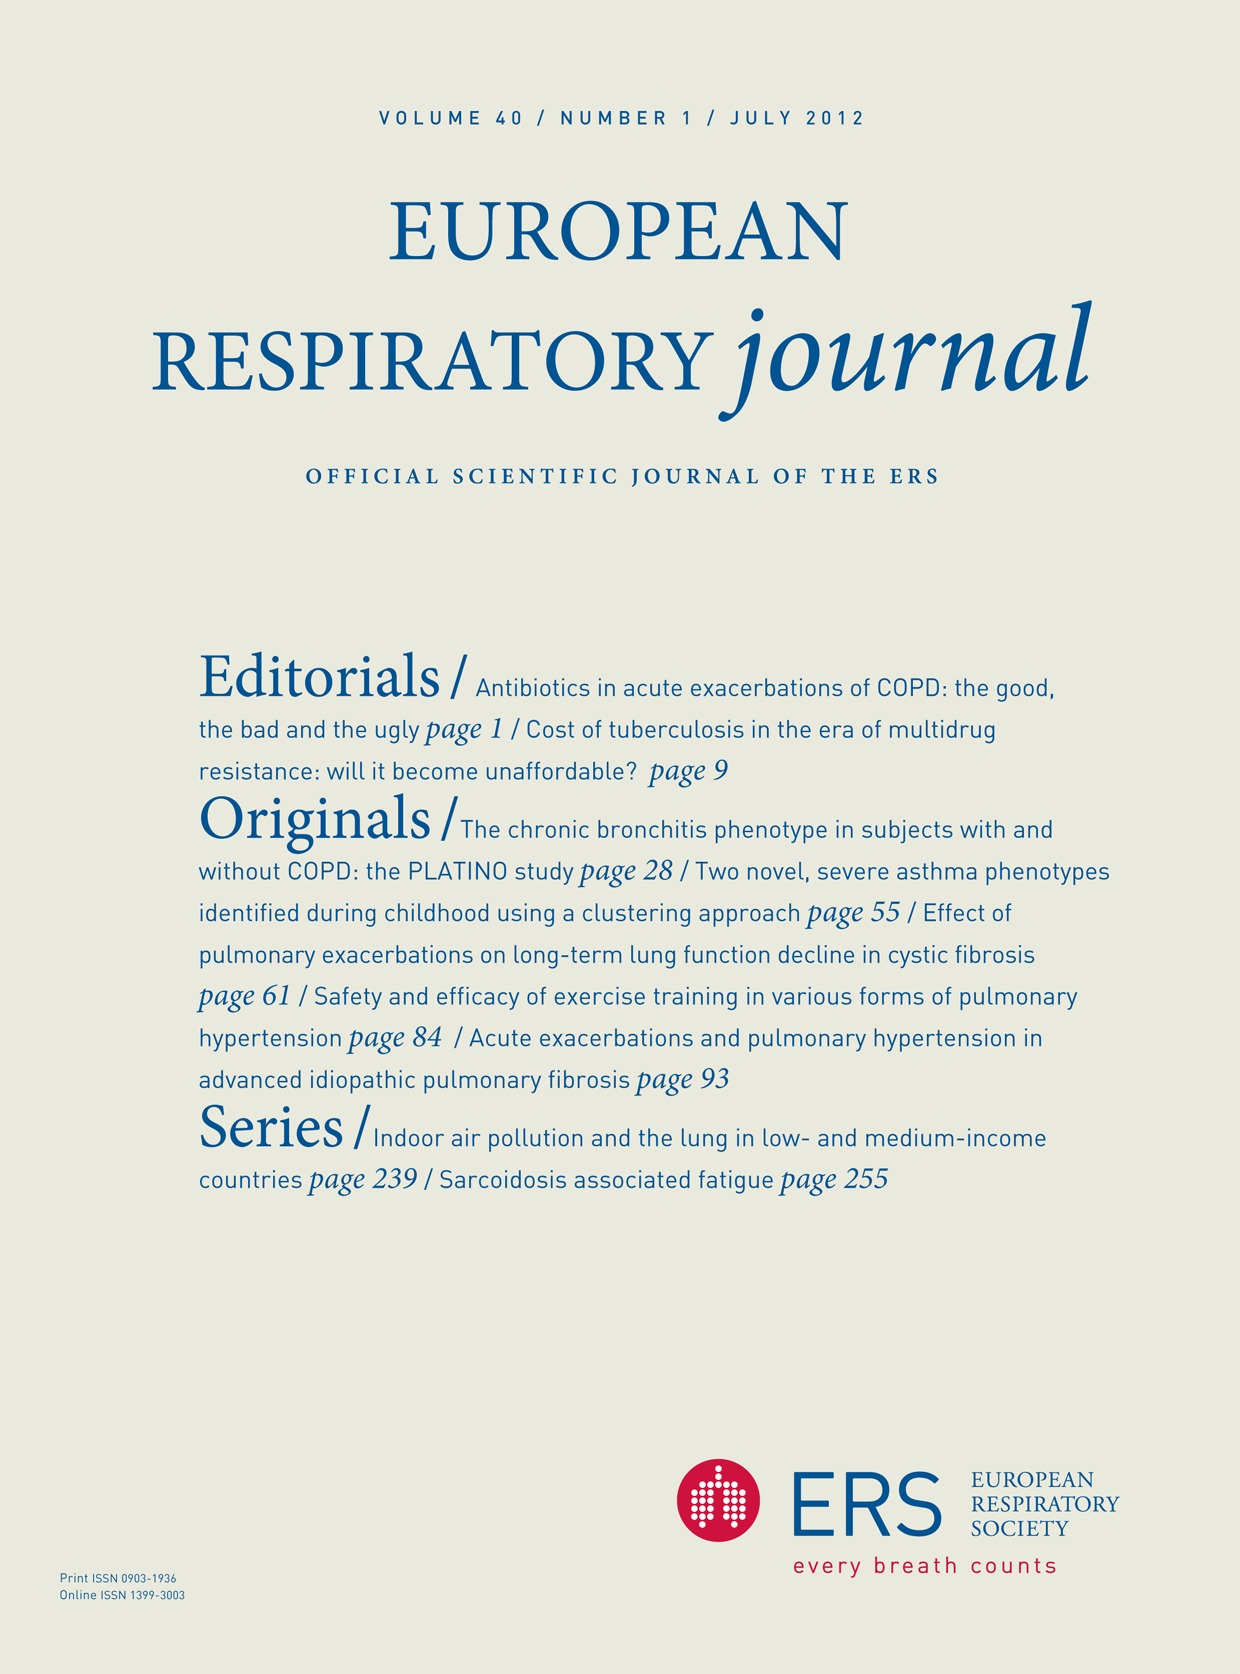 Moxifloxacin versus amoxicillin/clavulanic acid in outpatient acute  exacerbations of COPD: MAESTRAL results | European Respiratory Society